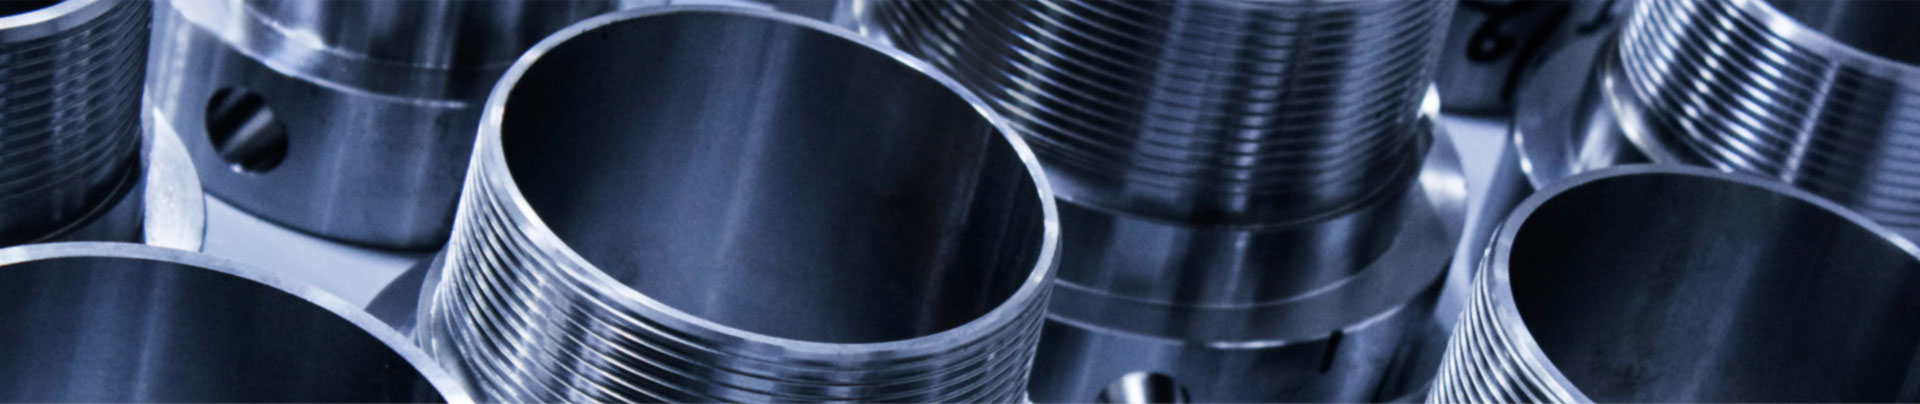 Anson OCTG tubular, the leading provider of OCTG products